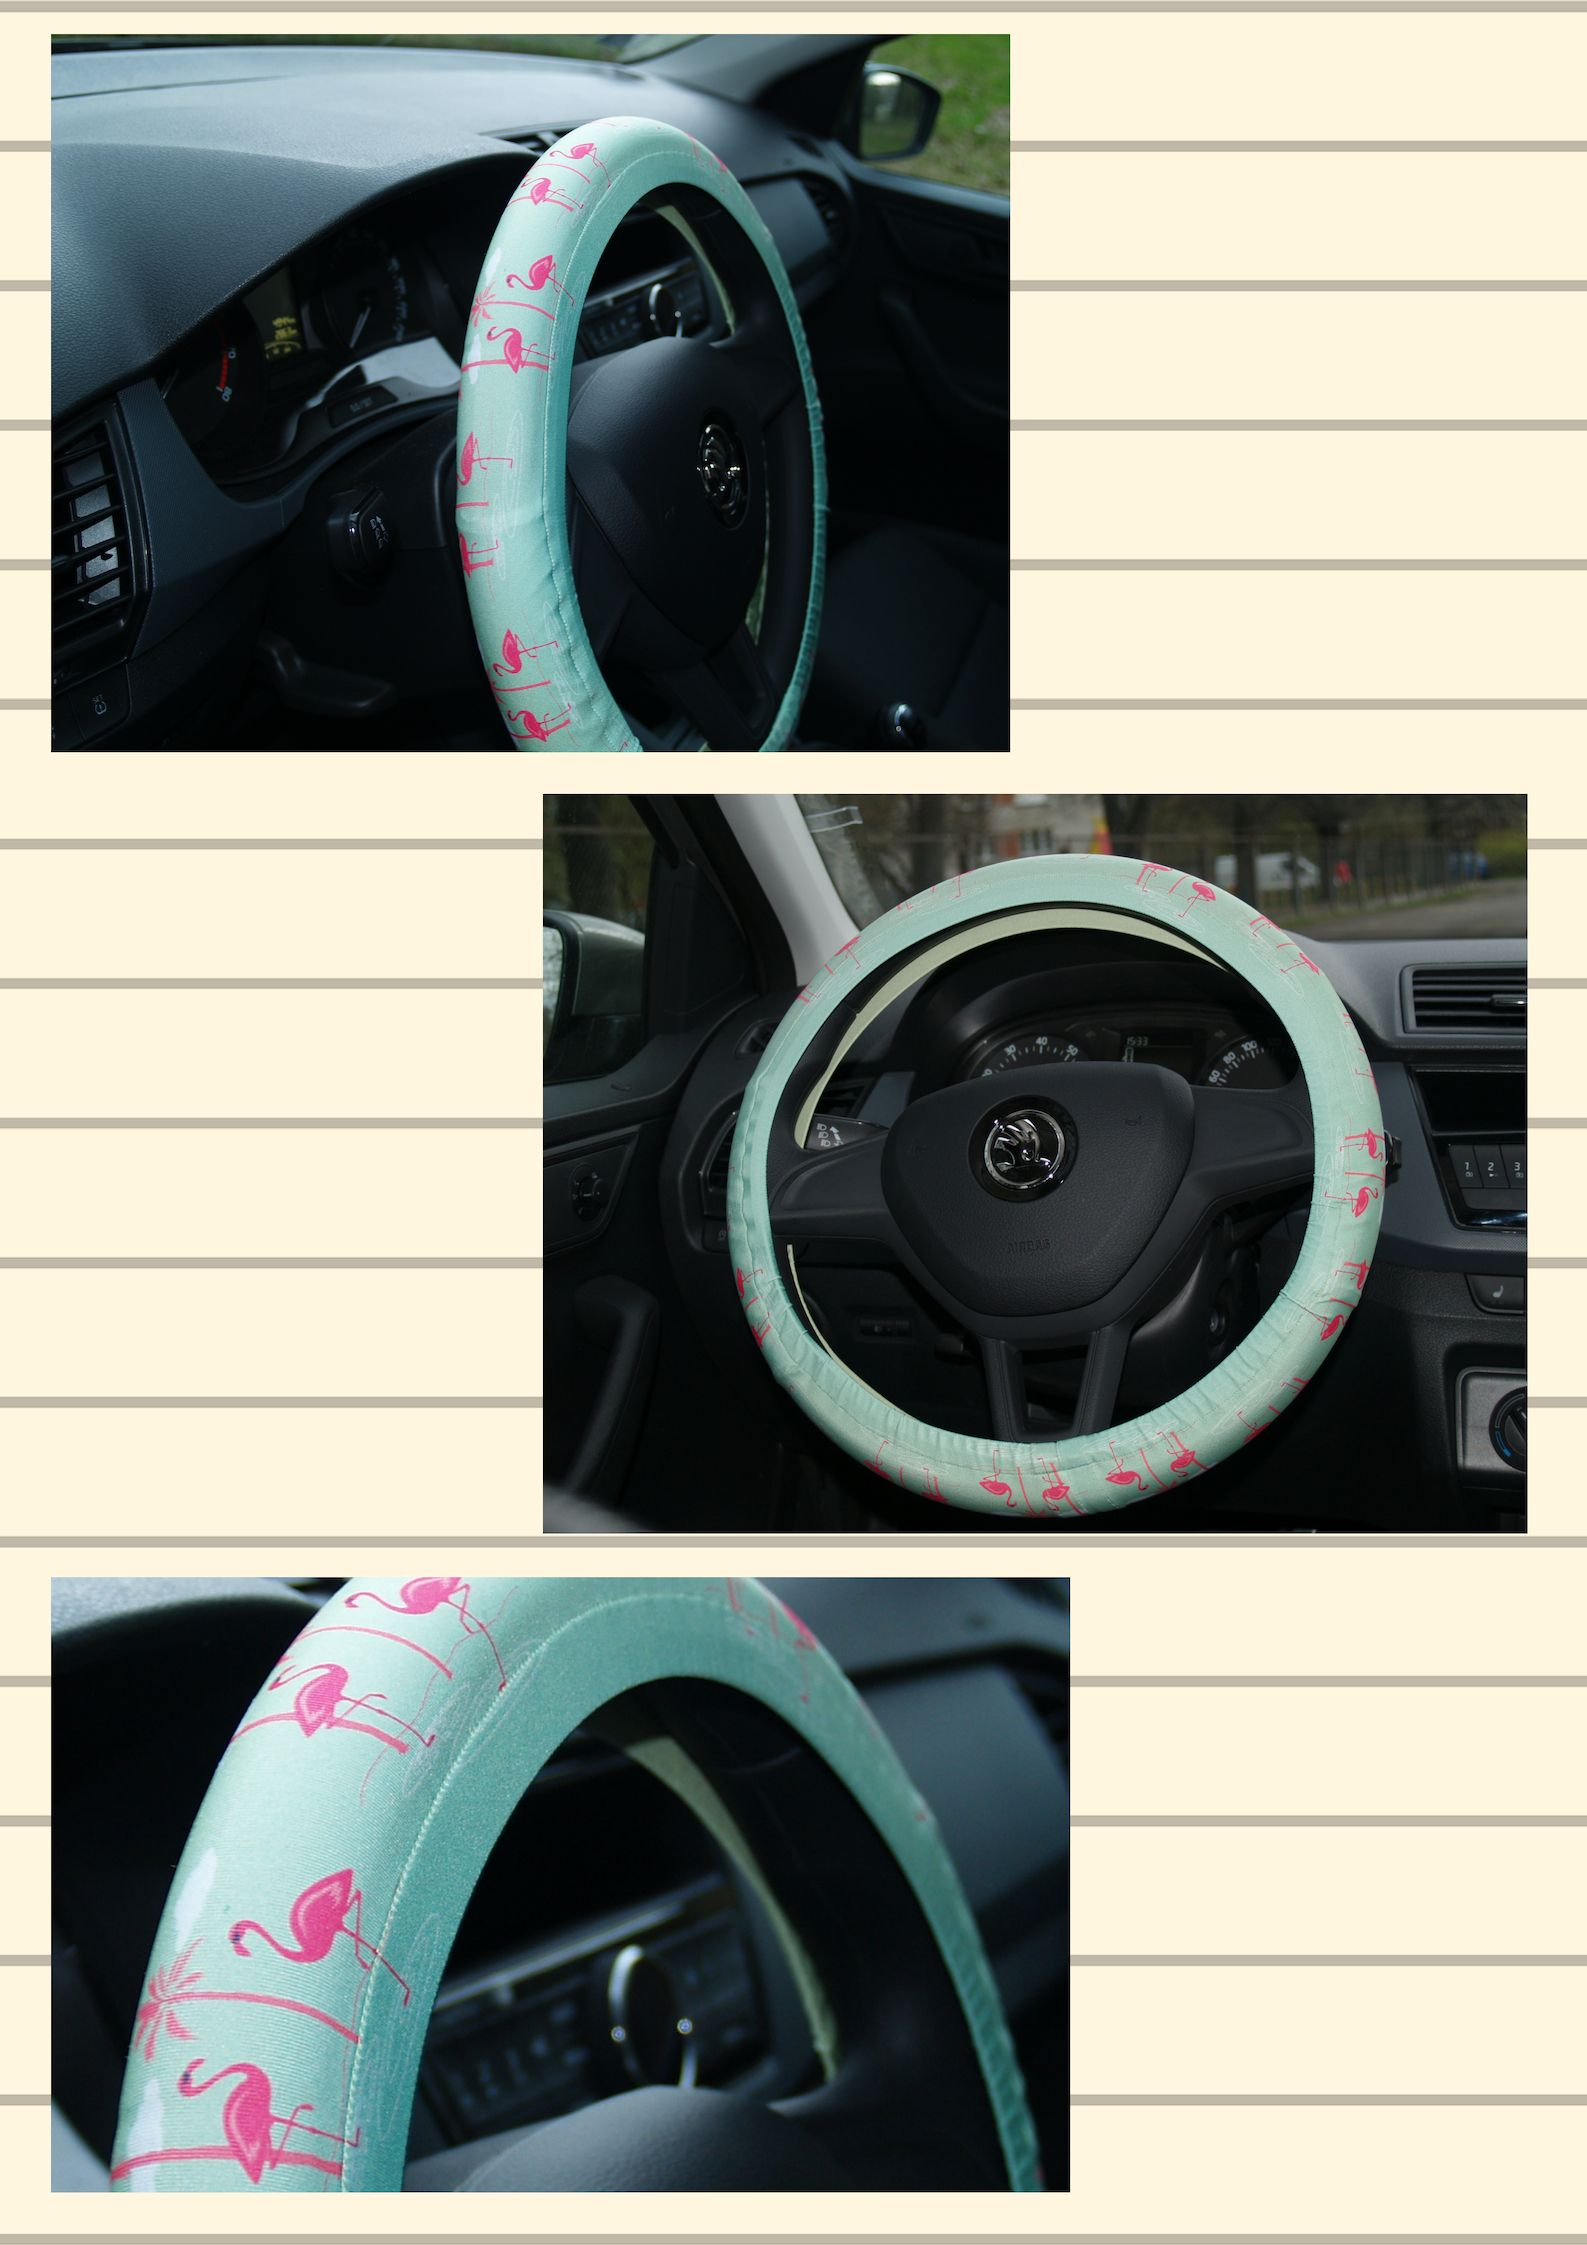 Flamingos Steering Wheel Cover Car Accessory Gifts For Her